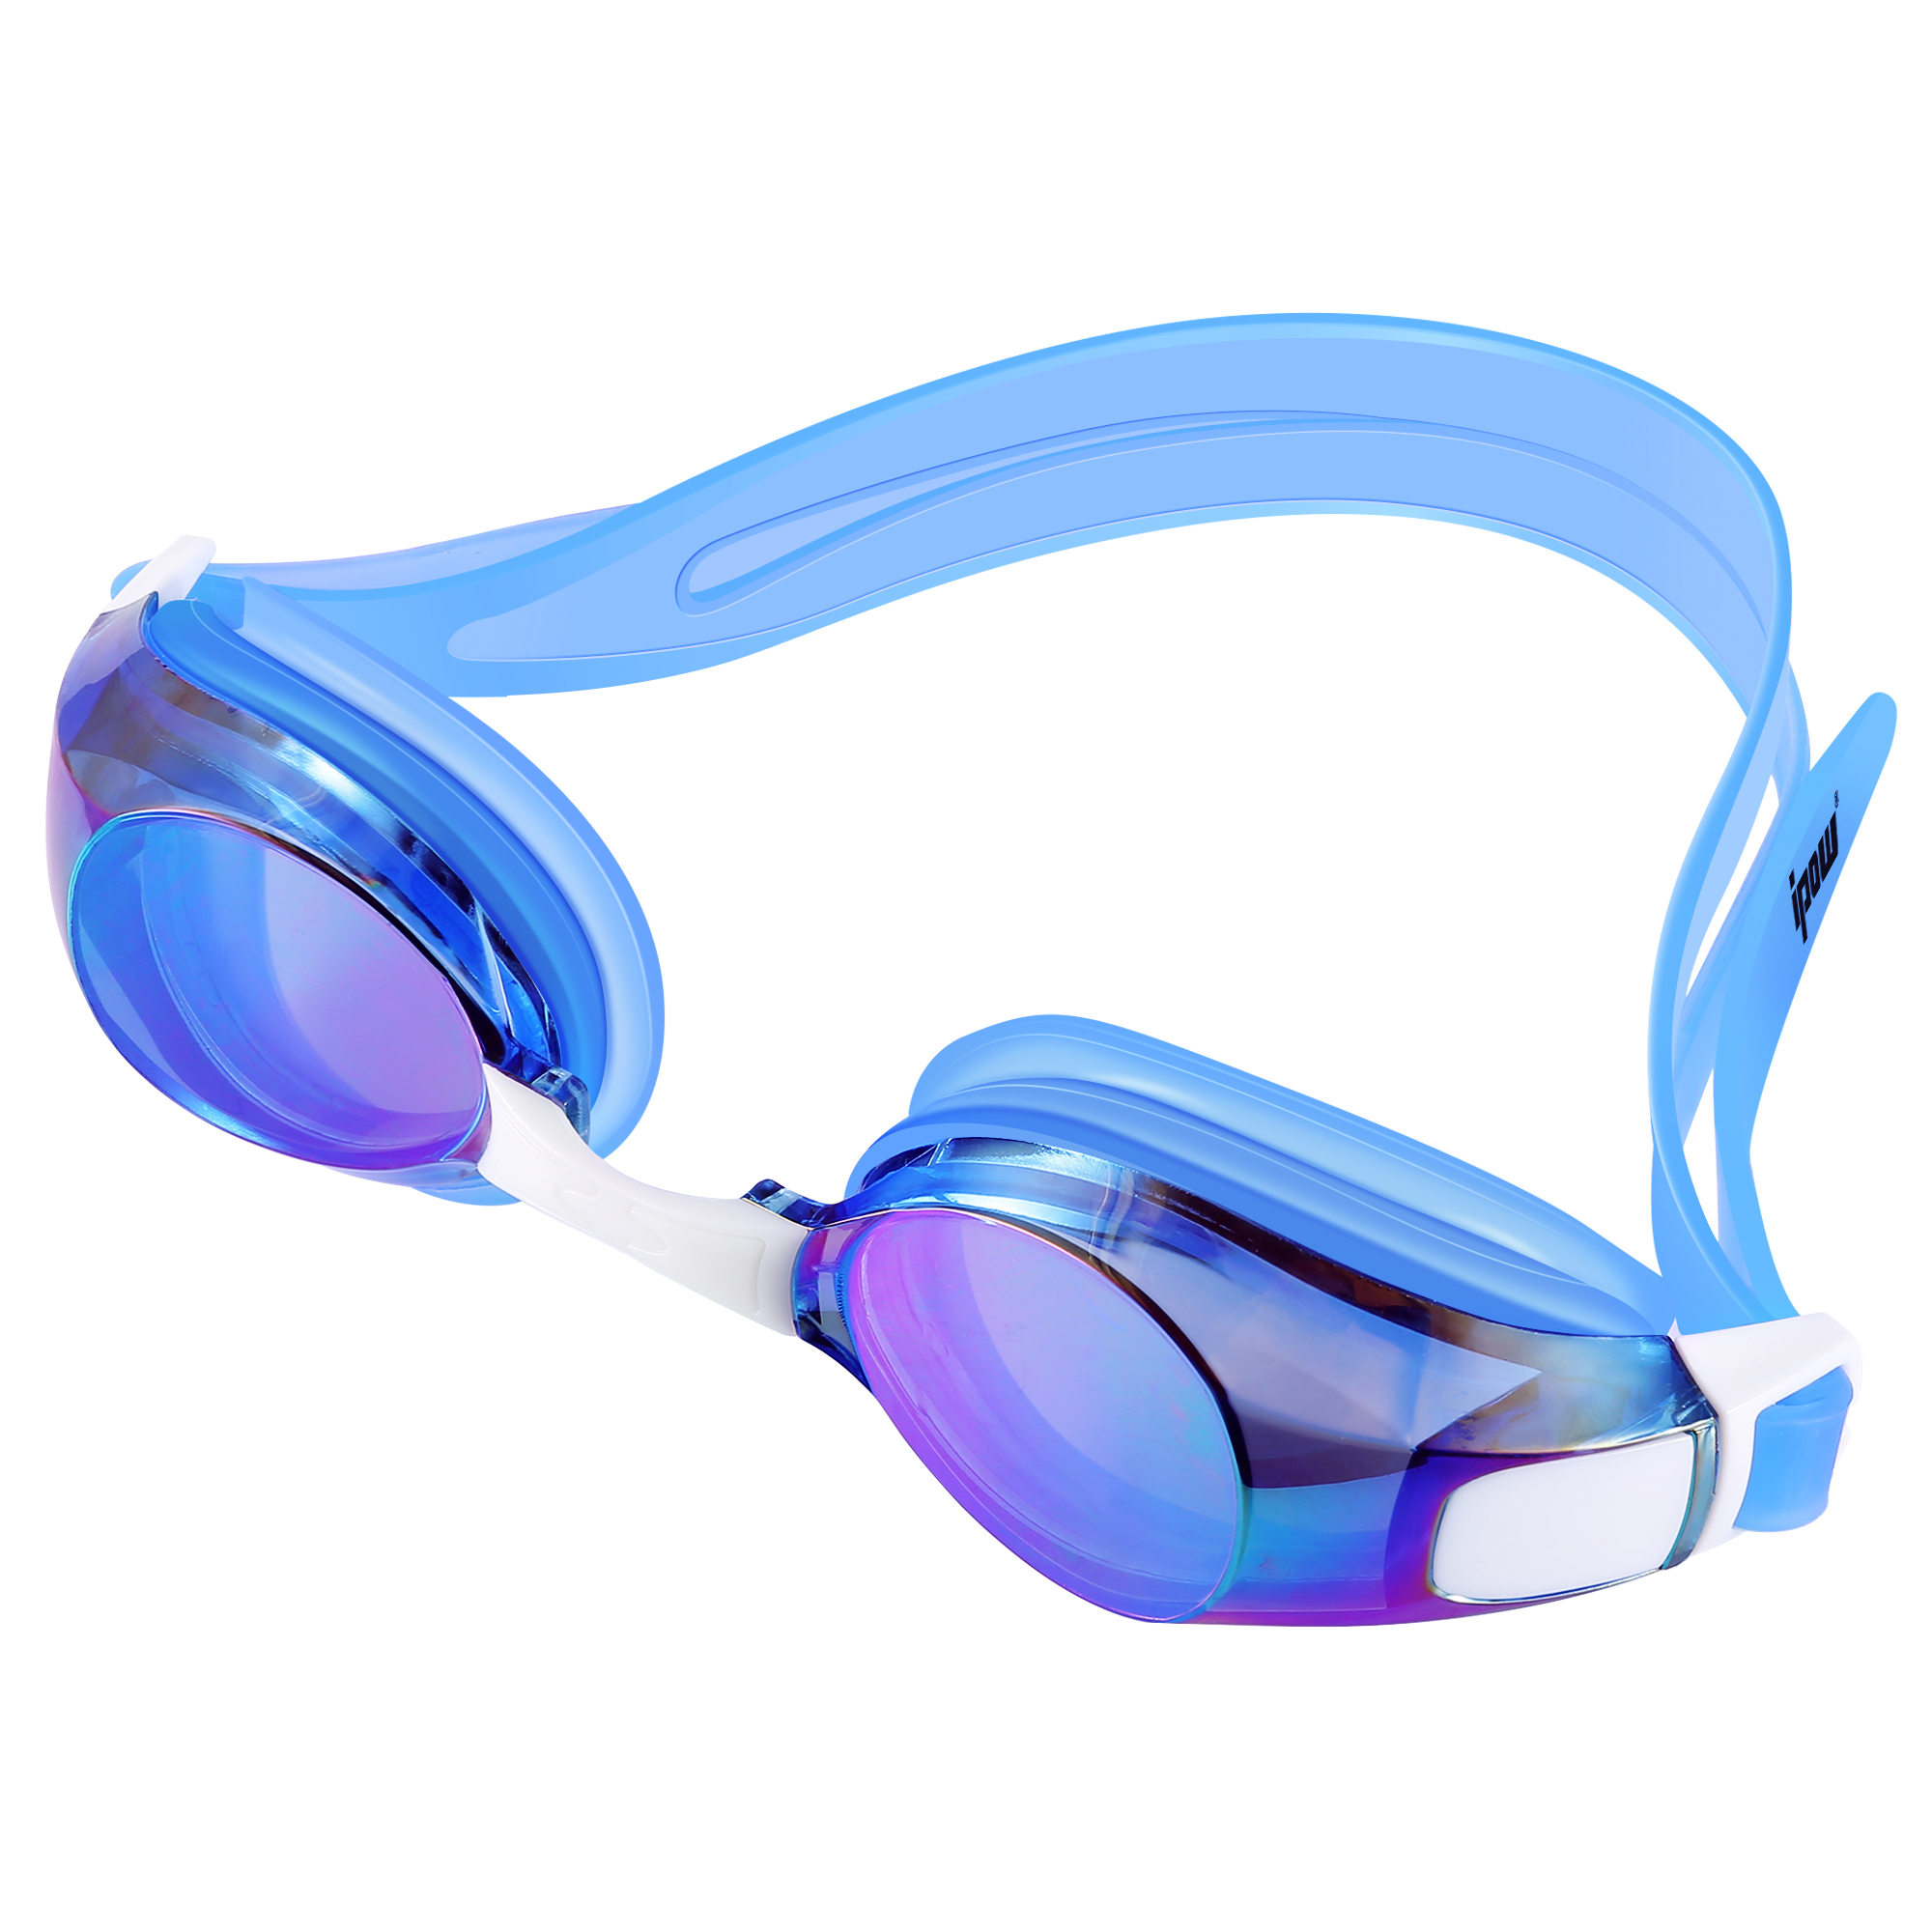 Swimming Goggles, IPOW Waterproof Swim Goggles Anti-Fog Swimming Glasses for Adults Women Men Kids Girls Boys Youth,UV Protection Swim Goggle with Free Protection Case, Blue